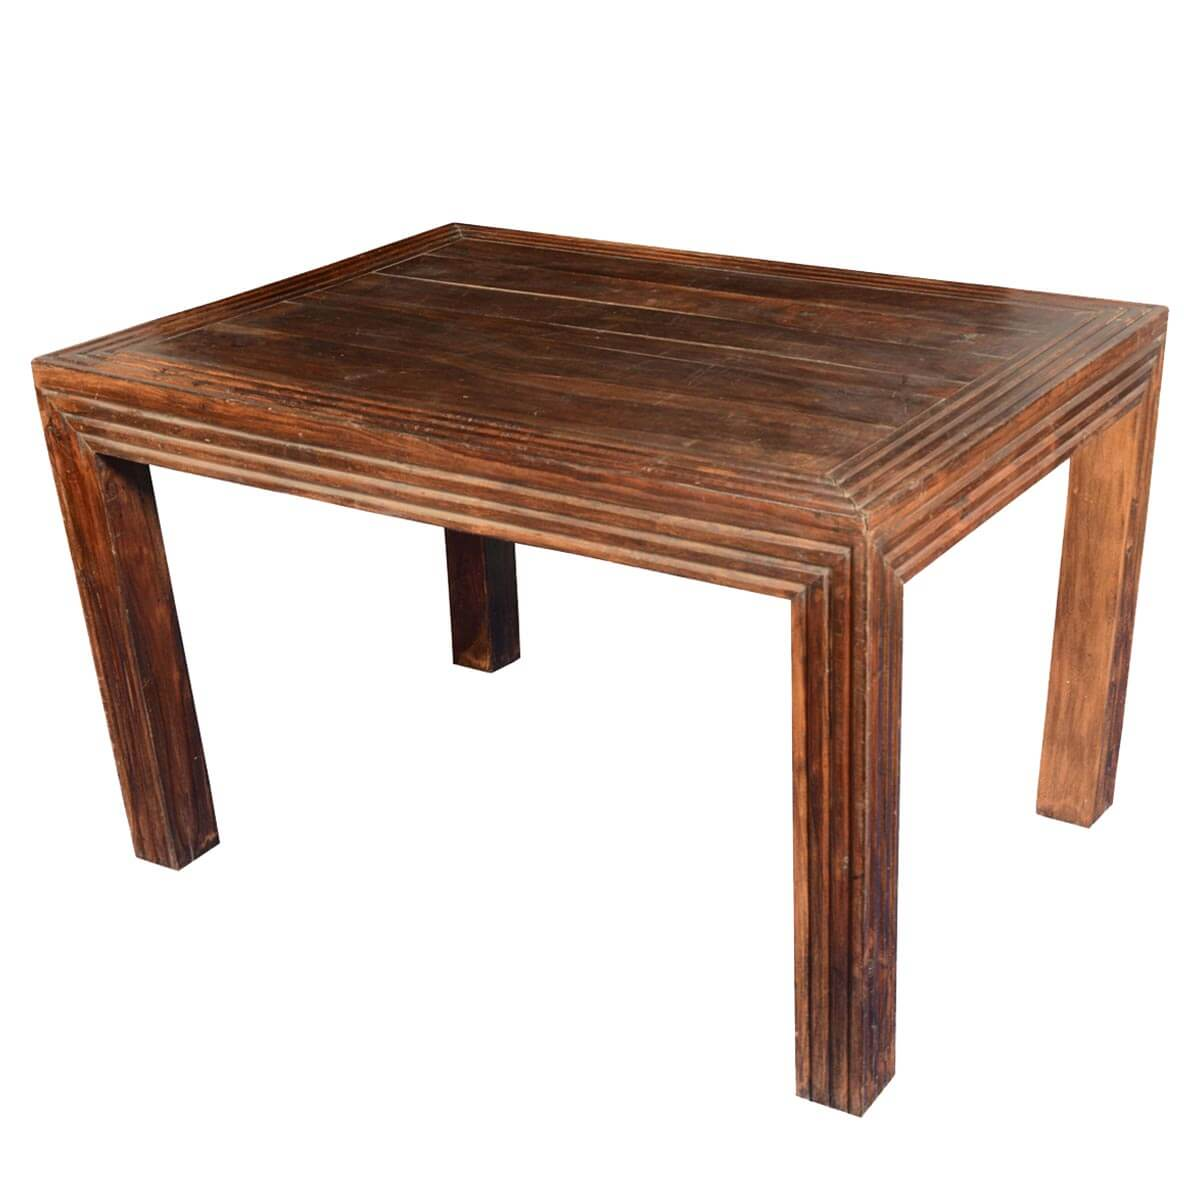 Sierra rustic handcrafted mango wood dining table - Handmade wooden dining tables ...